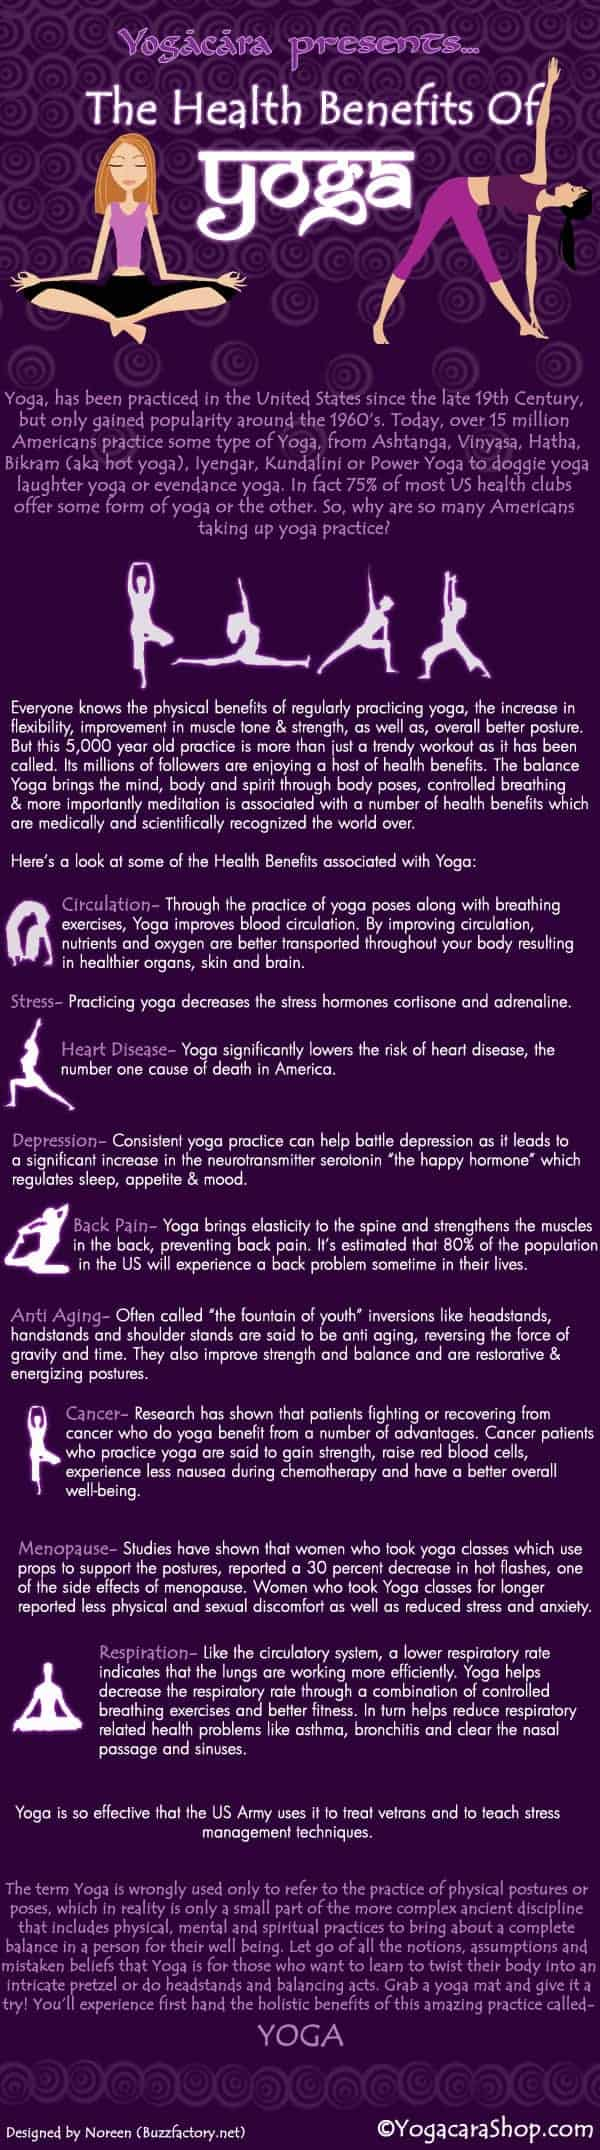 yoga, benefits, health, exercise, stretching, posture, gym, class, workout